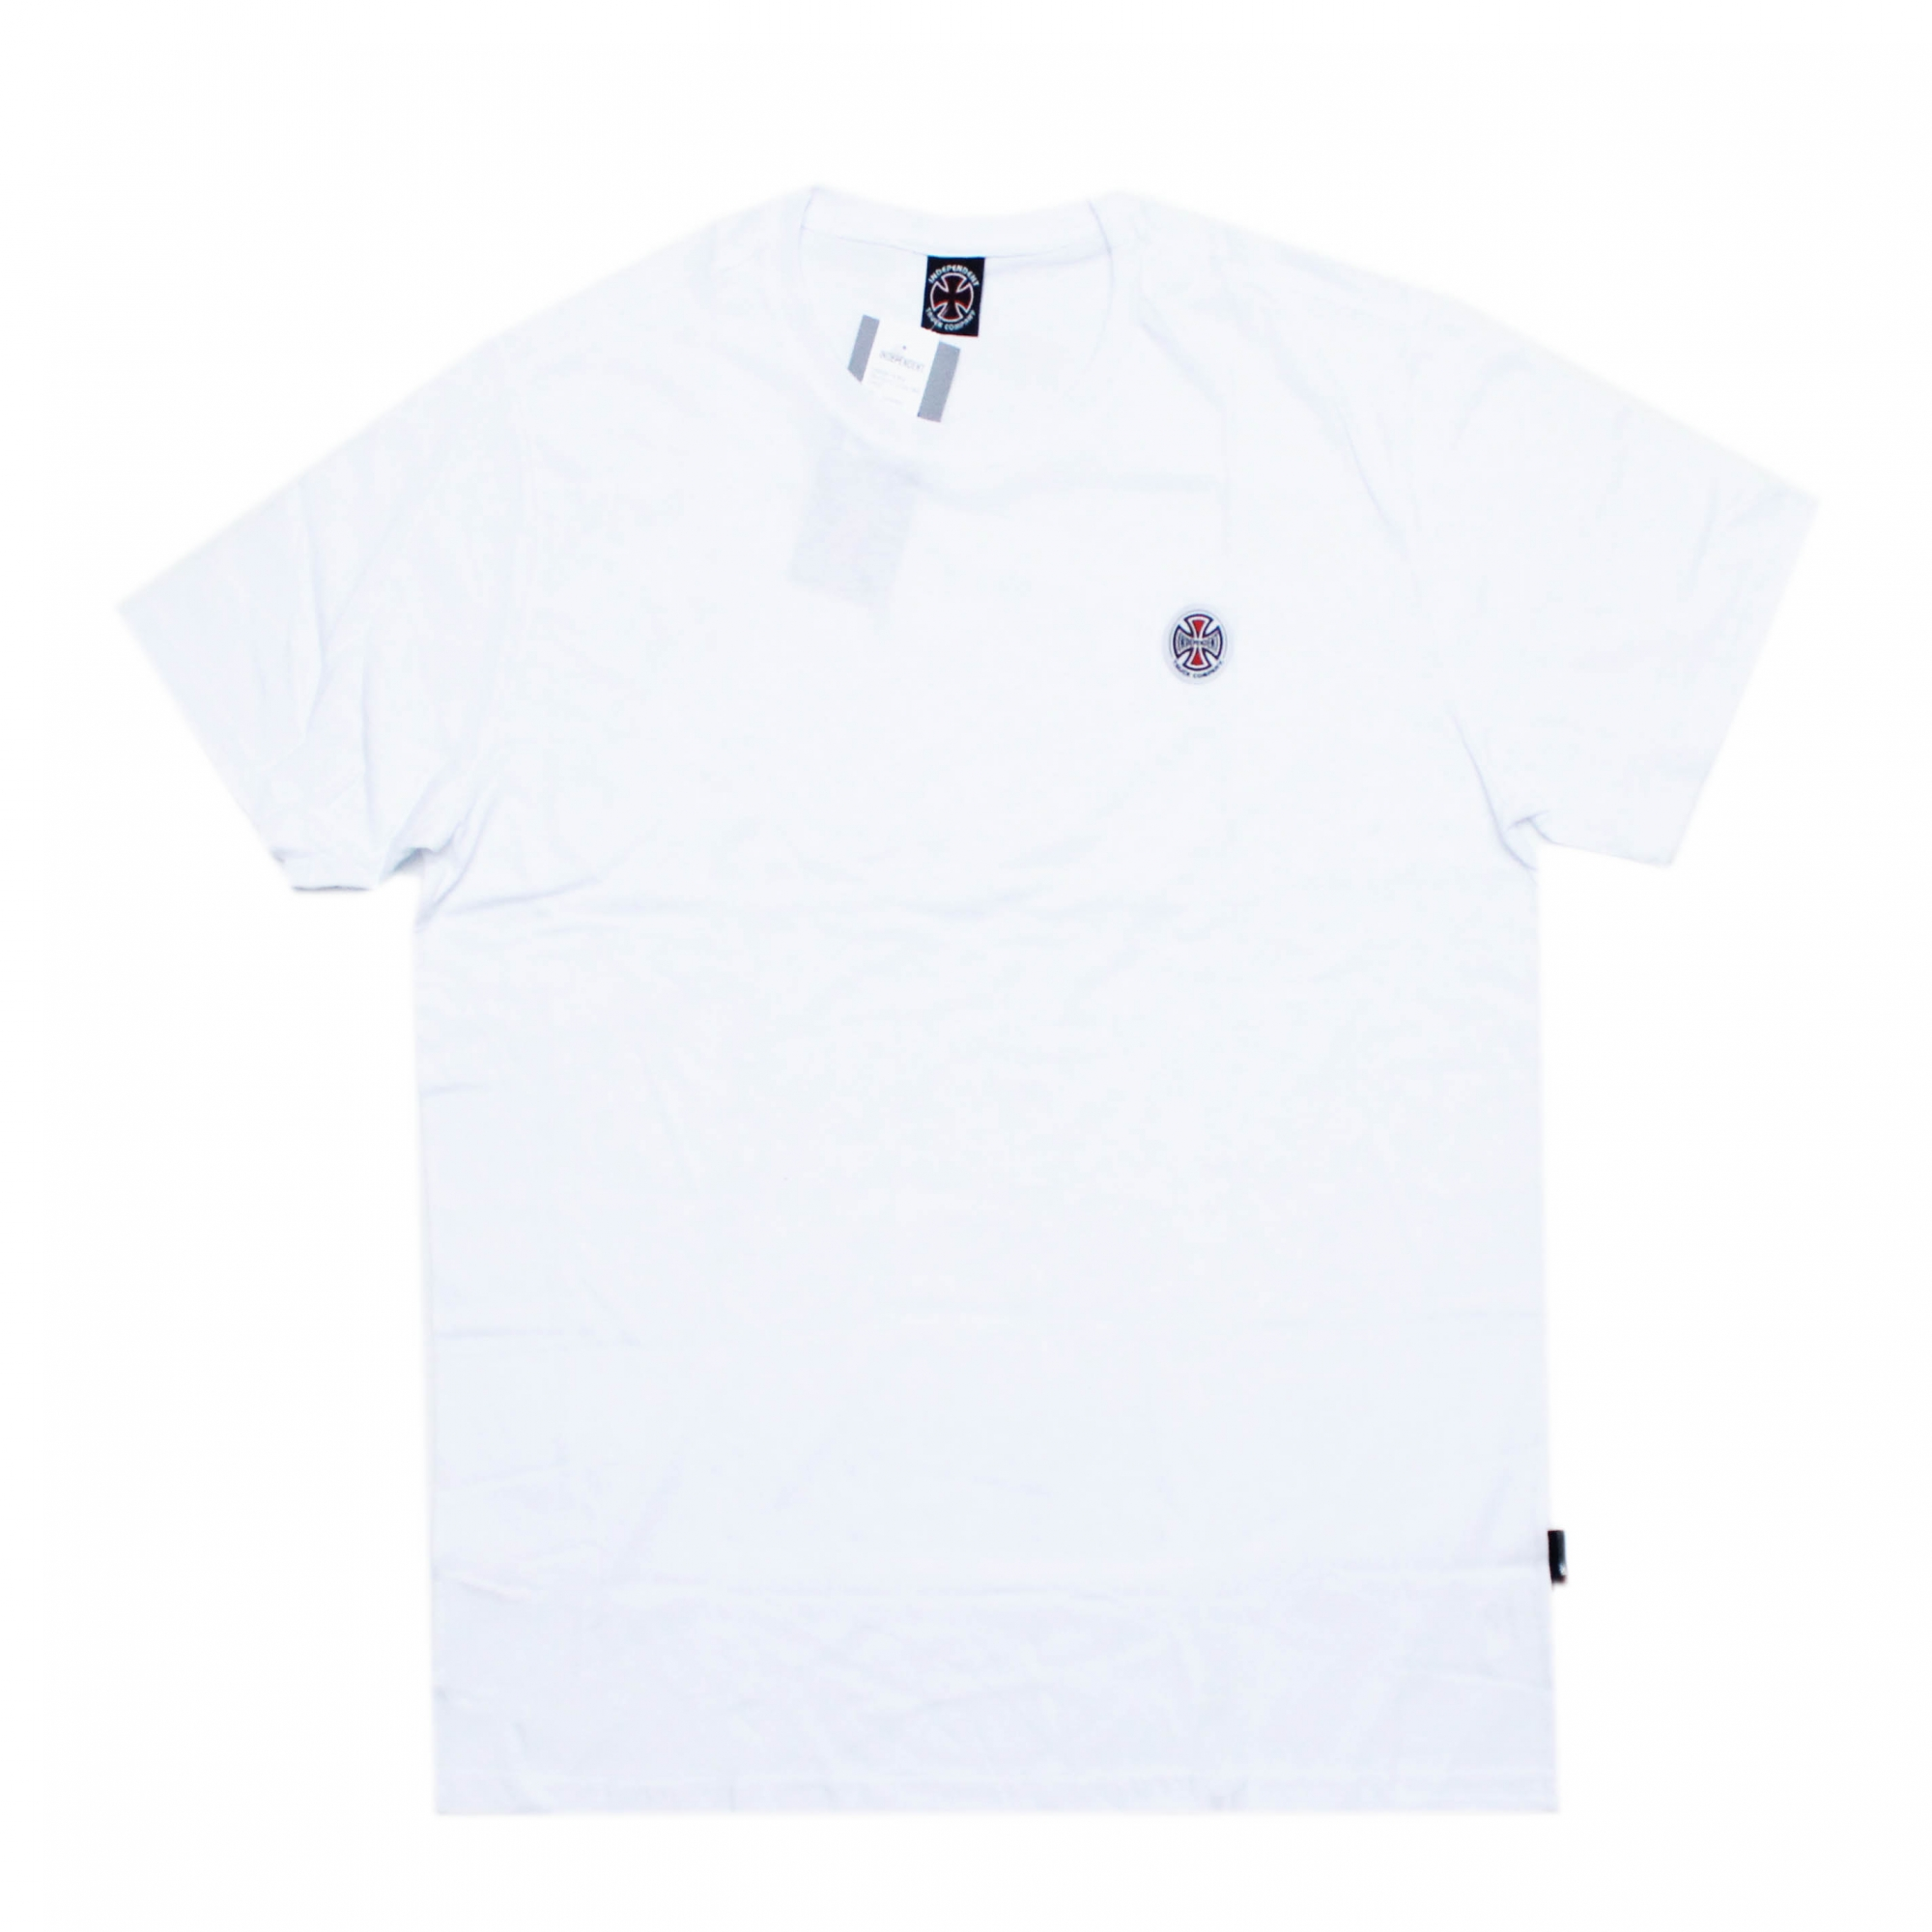 Camiseta Independent Buttom Truck Co 3 Colors Chest - Branco